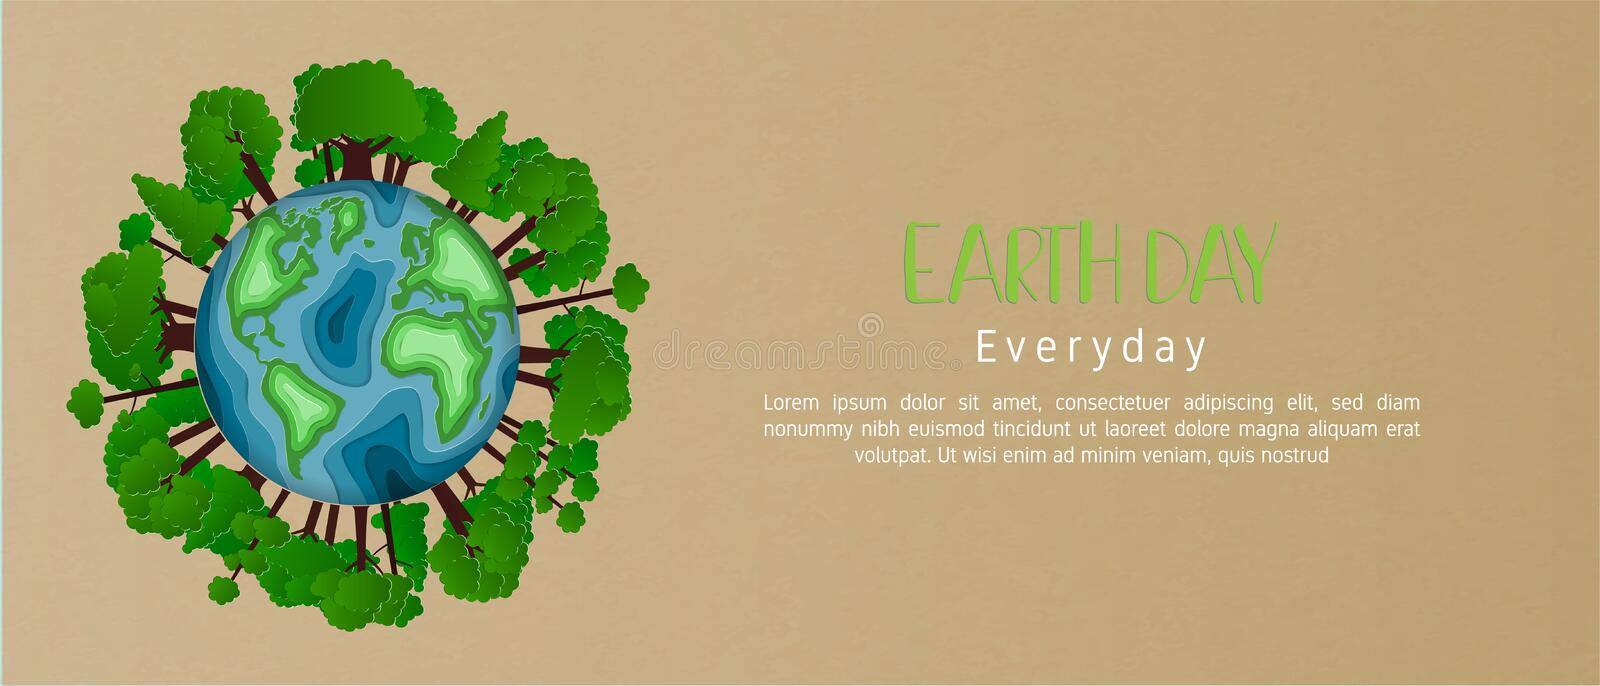 Earth day everyday concept in paper cut style. 3d paper art. Origami made carving Earth map shapes with tree forest on background royalty free stock image